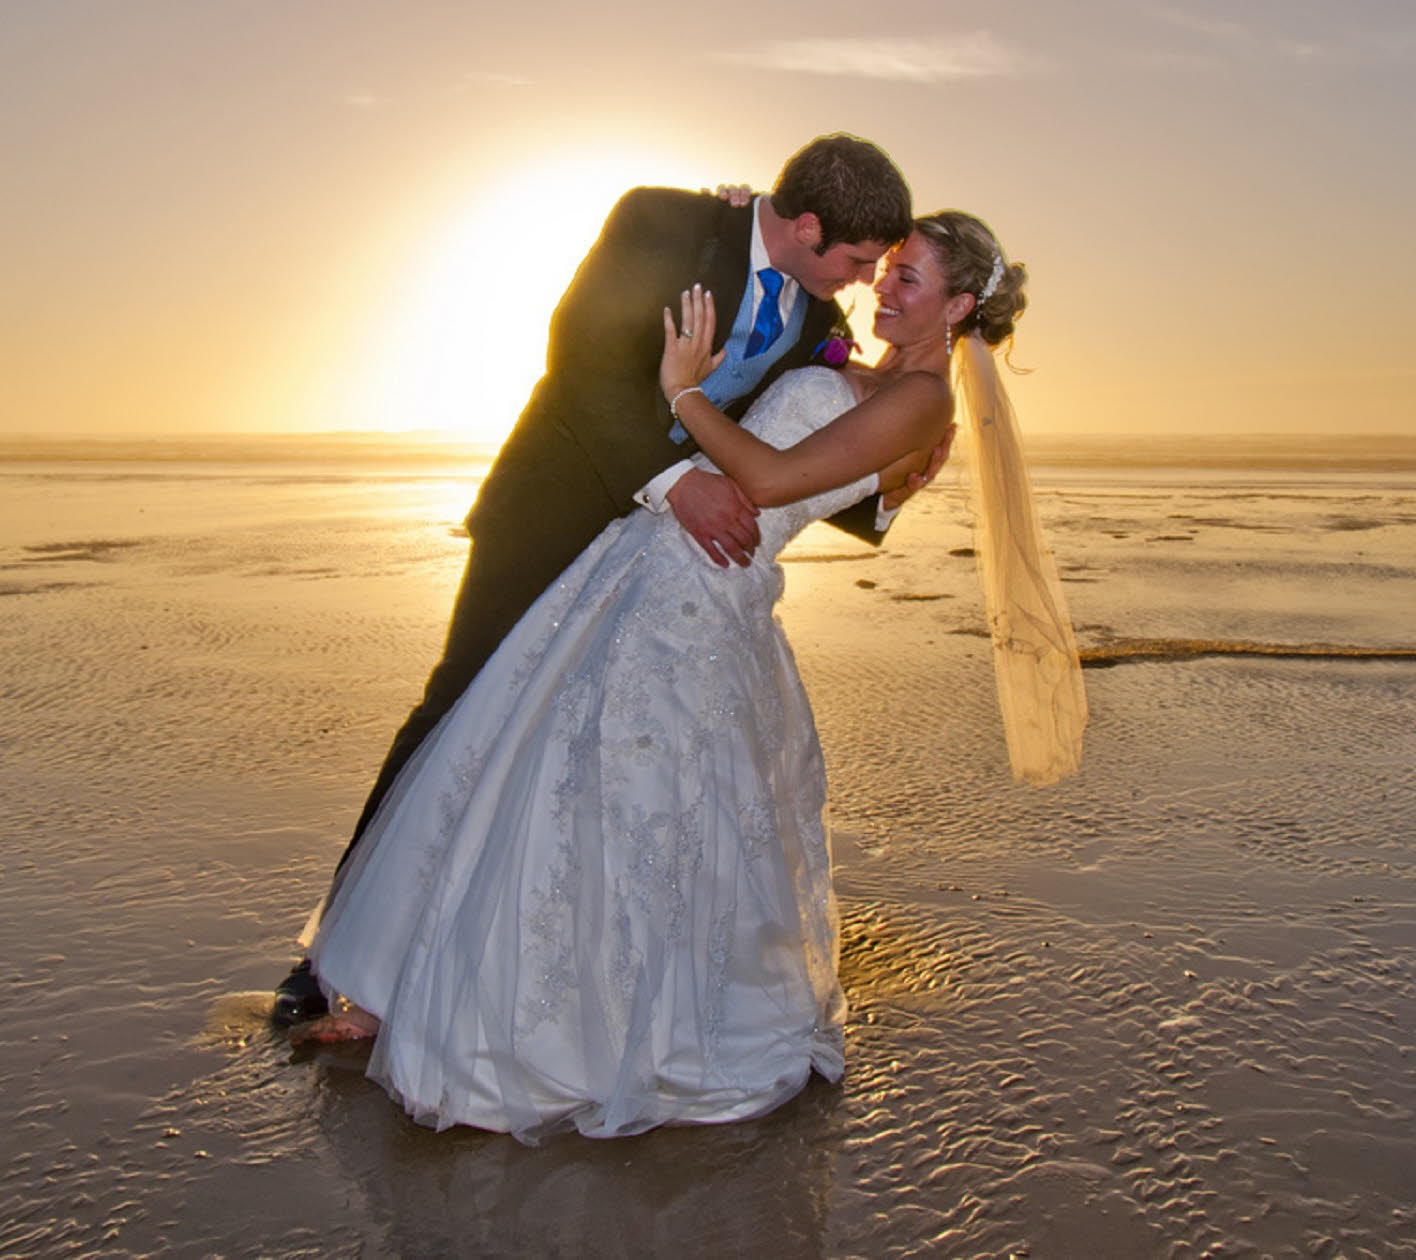 Stock Image of Newly Married Couple on Beach - Lensicle